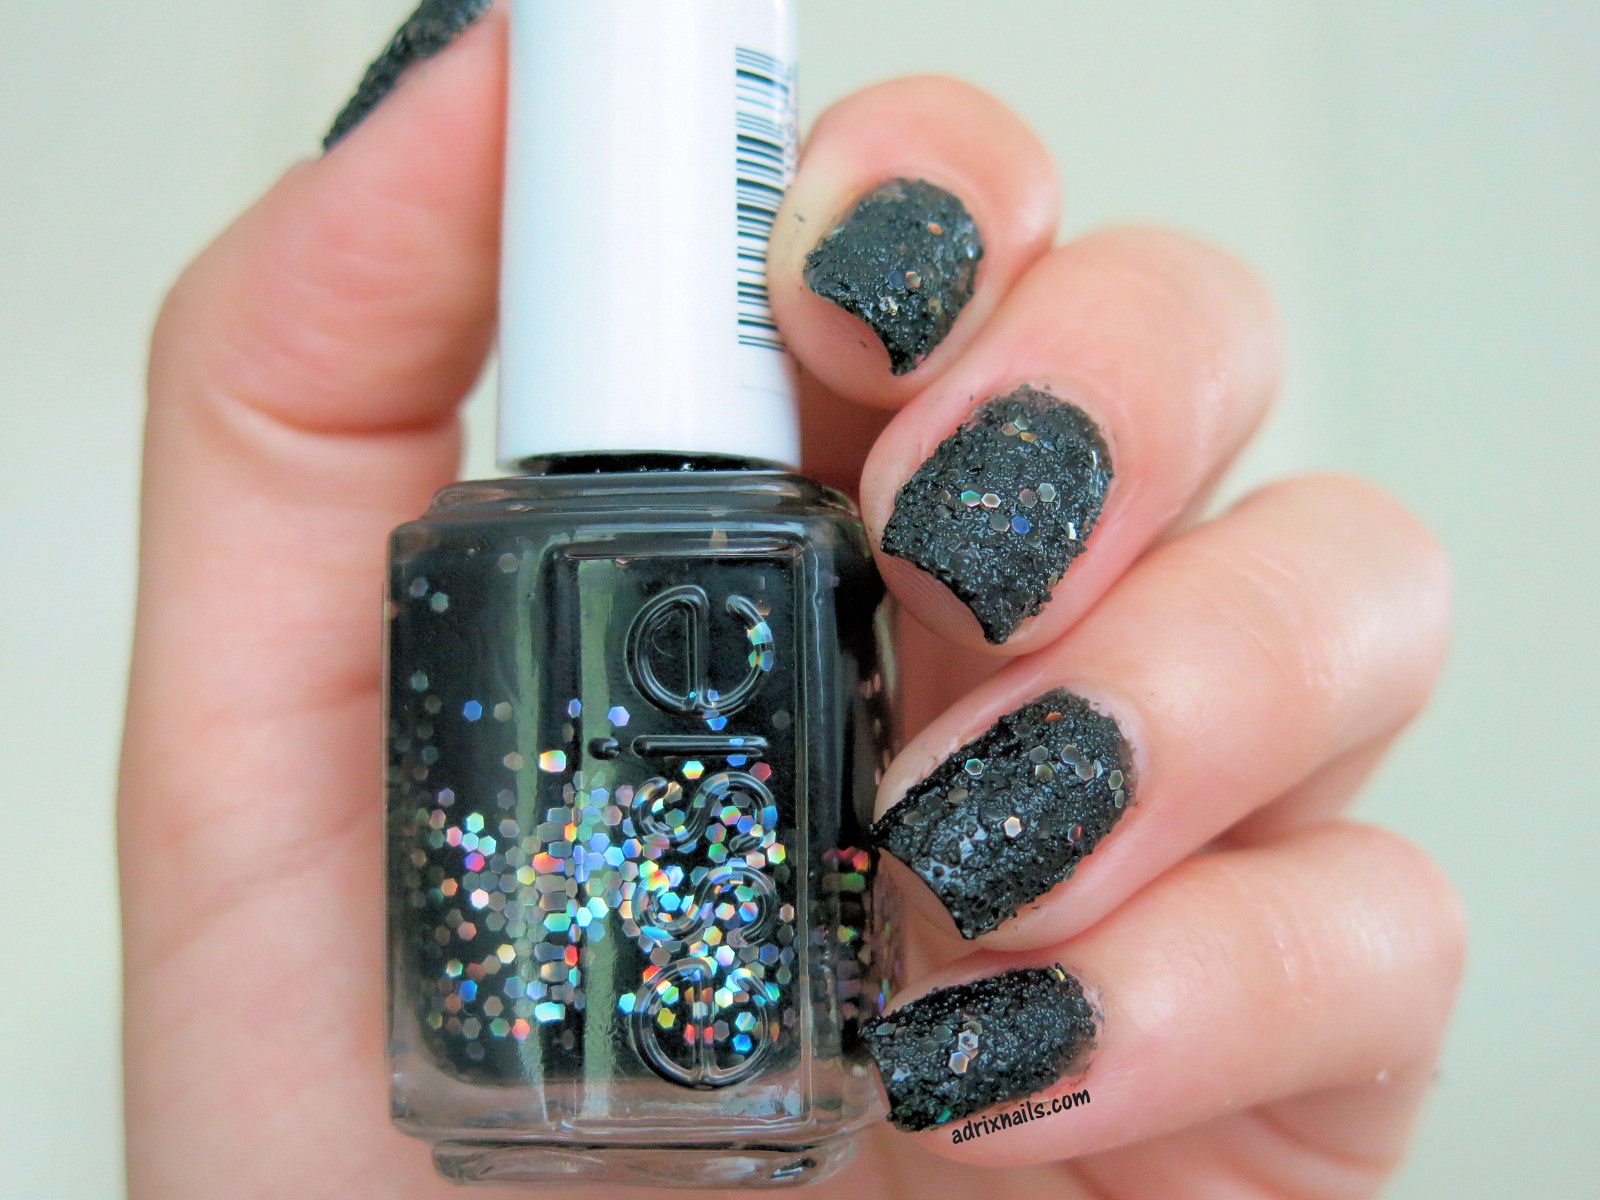 Colores: Essie -Belugaria- | Adrix Nails: Uñas, barnices, nail art!♥